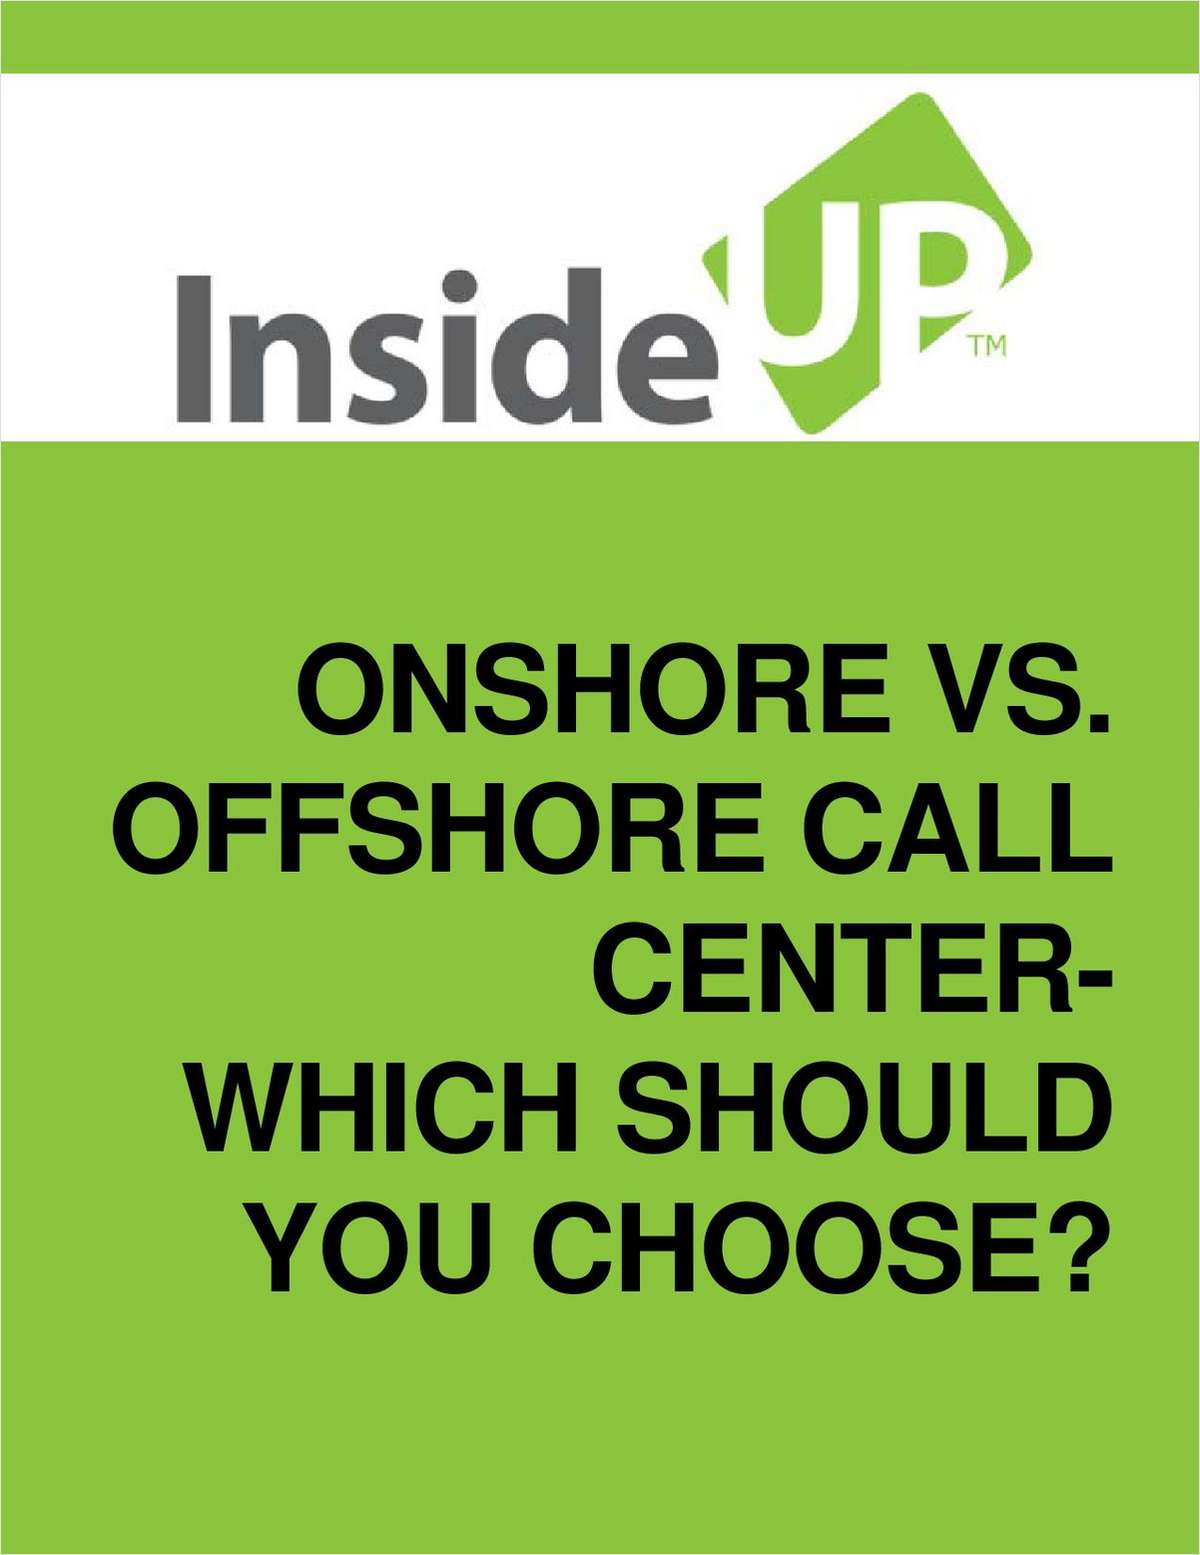 Onshore vs. Offshore:  Choosing the Best Call Center Service for Your Business